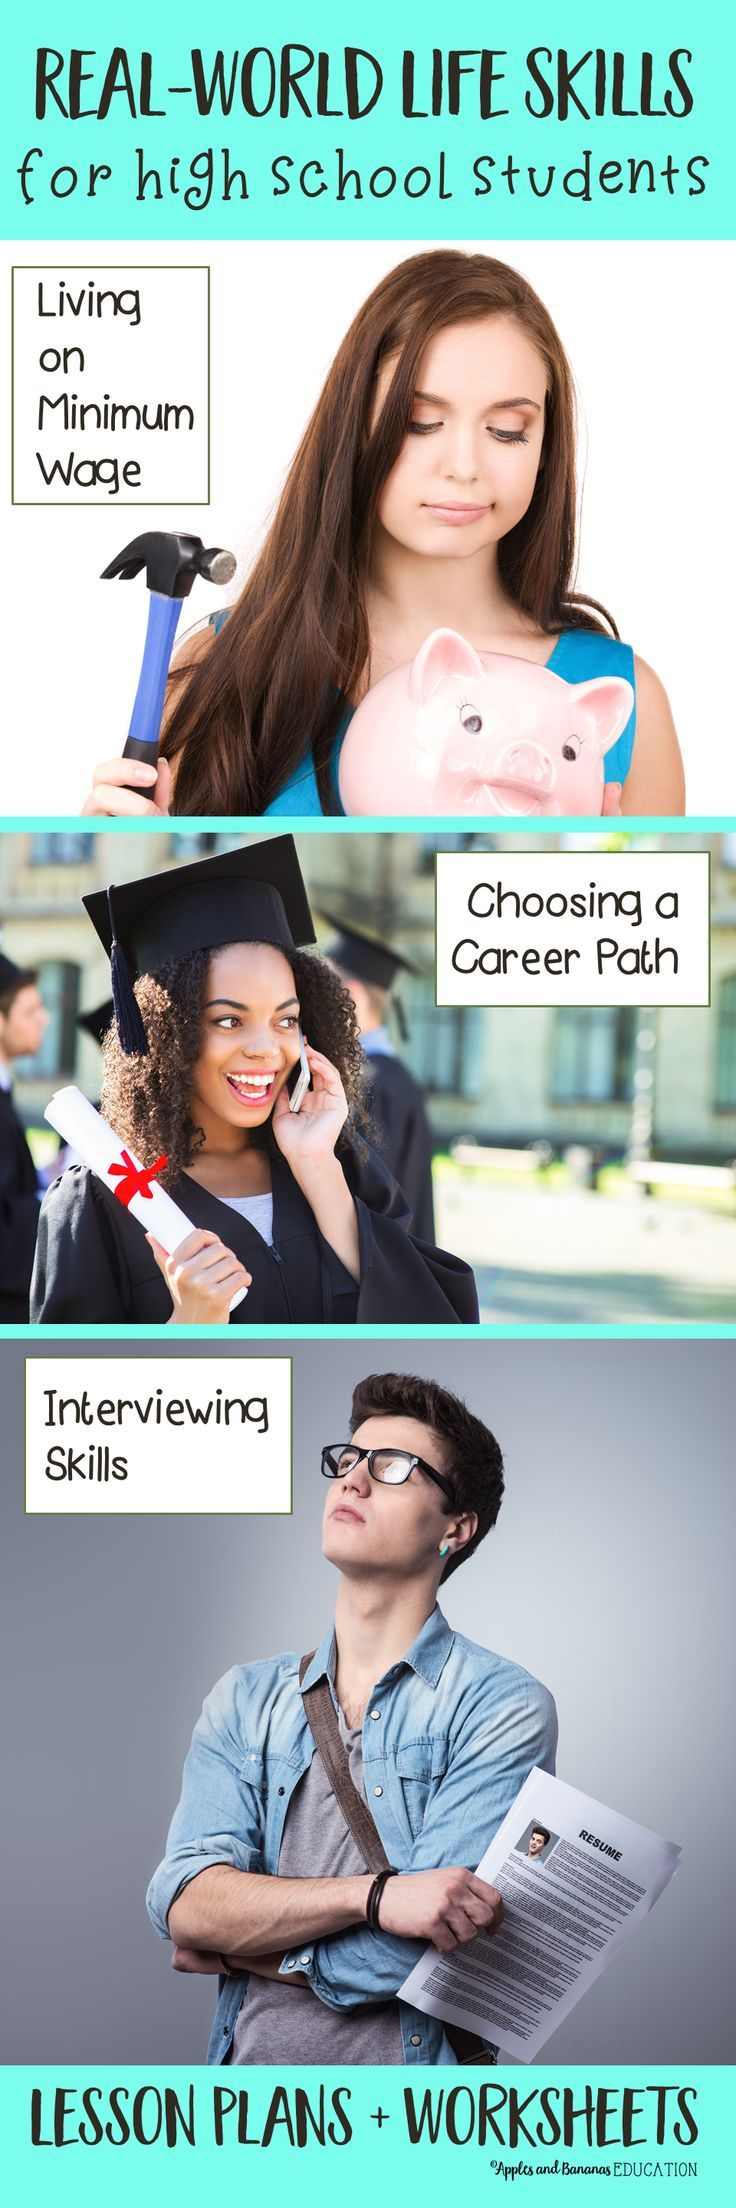 Job Search Tips for High School Students